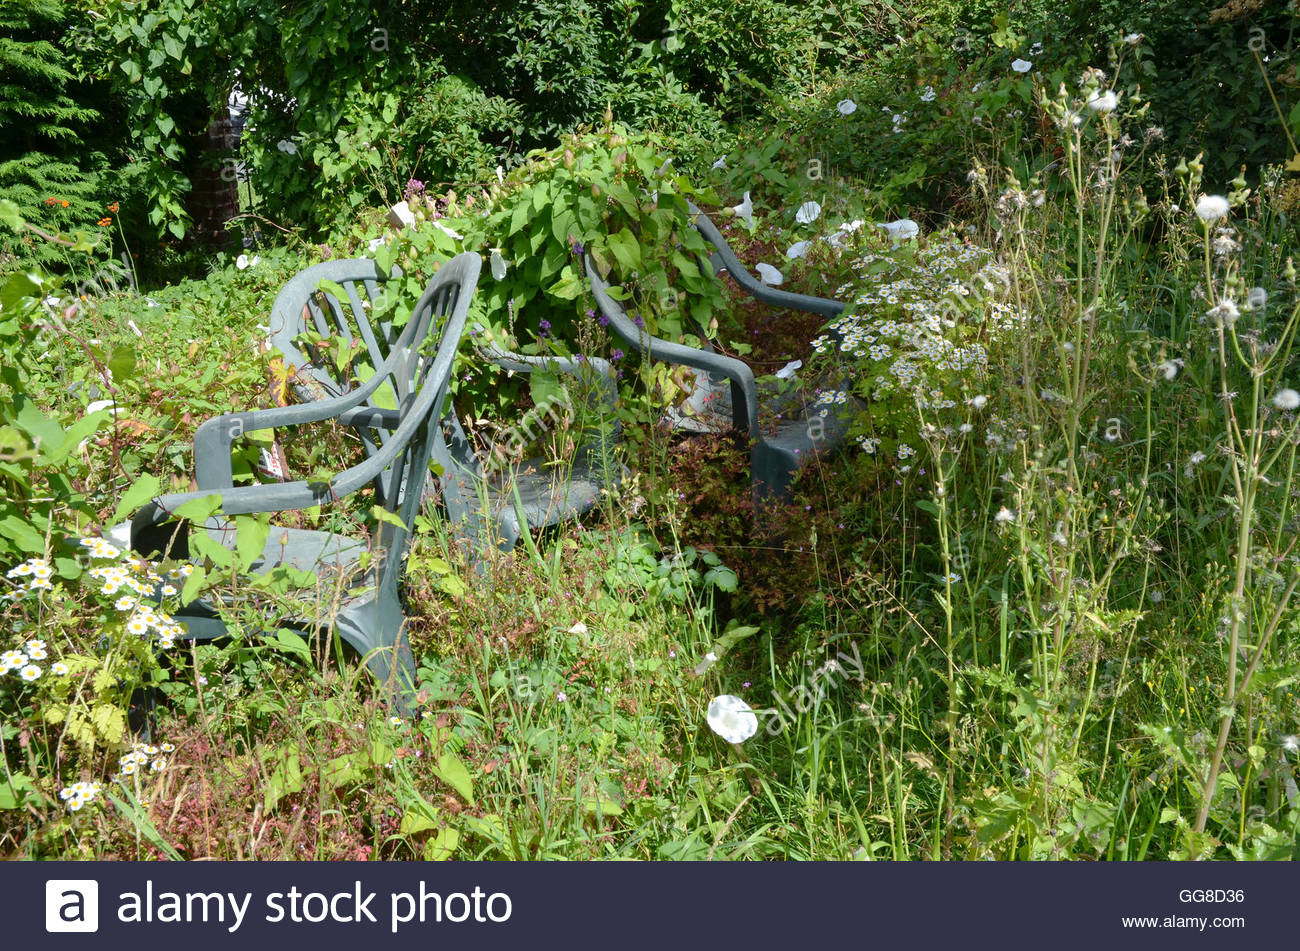 Plastic patio chairs left in a garden which has overgrown with neglect - Stock Image